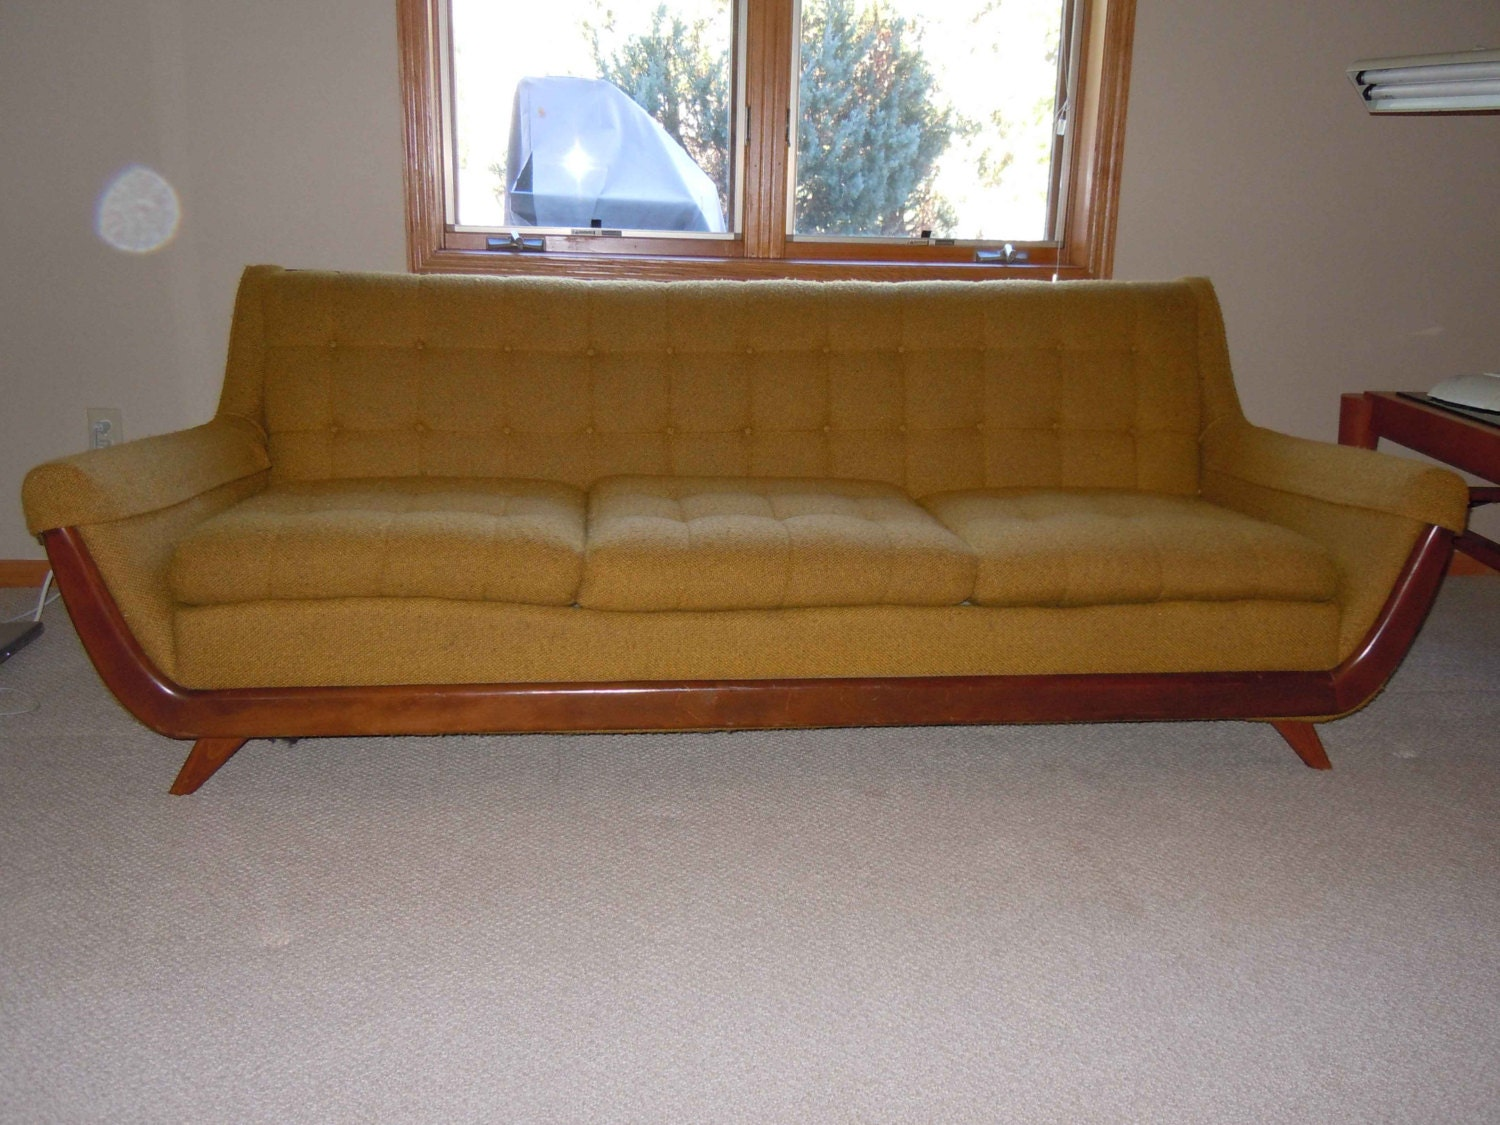 Adrian pearsall style gondola sofa norwalk furniture for Furniture 60s style